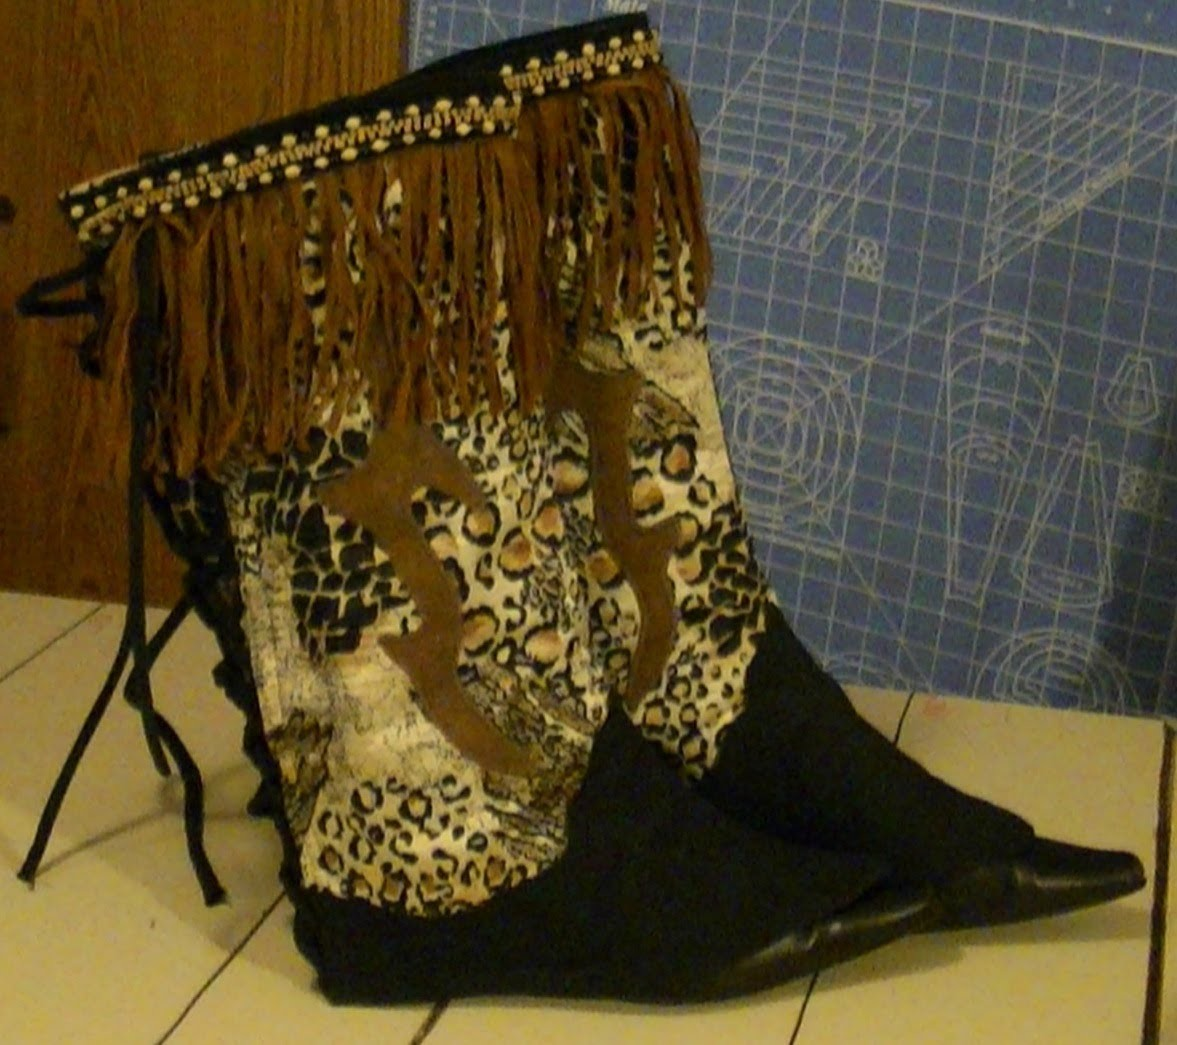 Make Your Own Cowboy Boots- Part 1 - Sewing With Niler